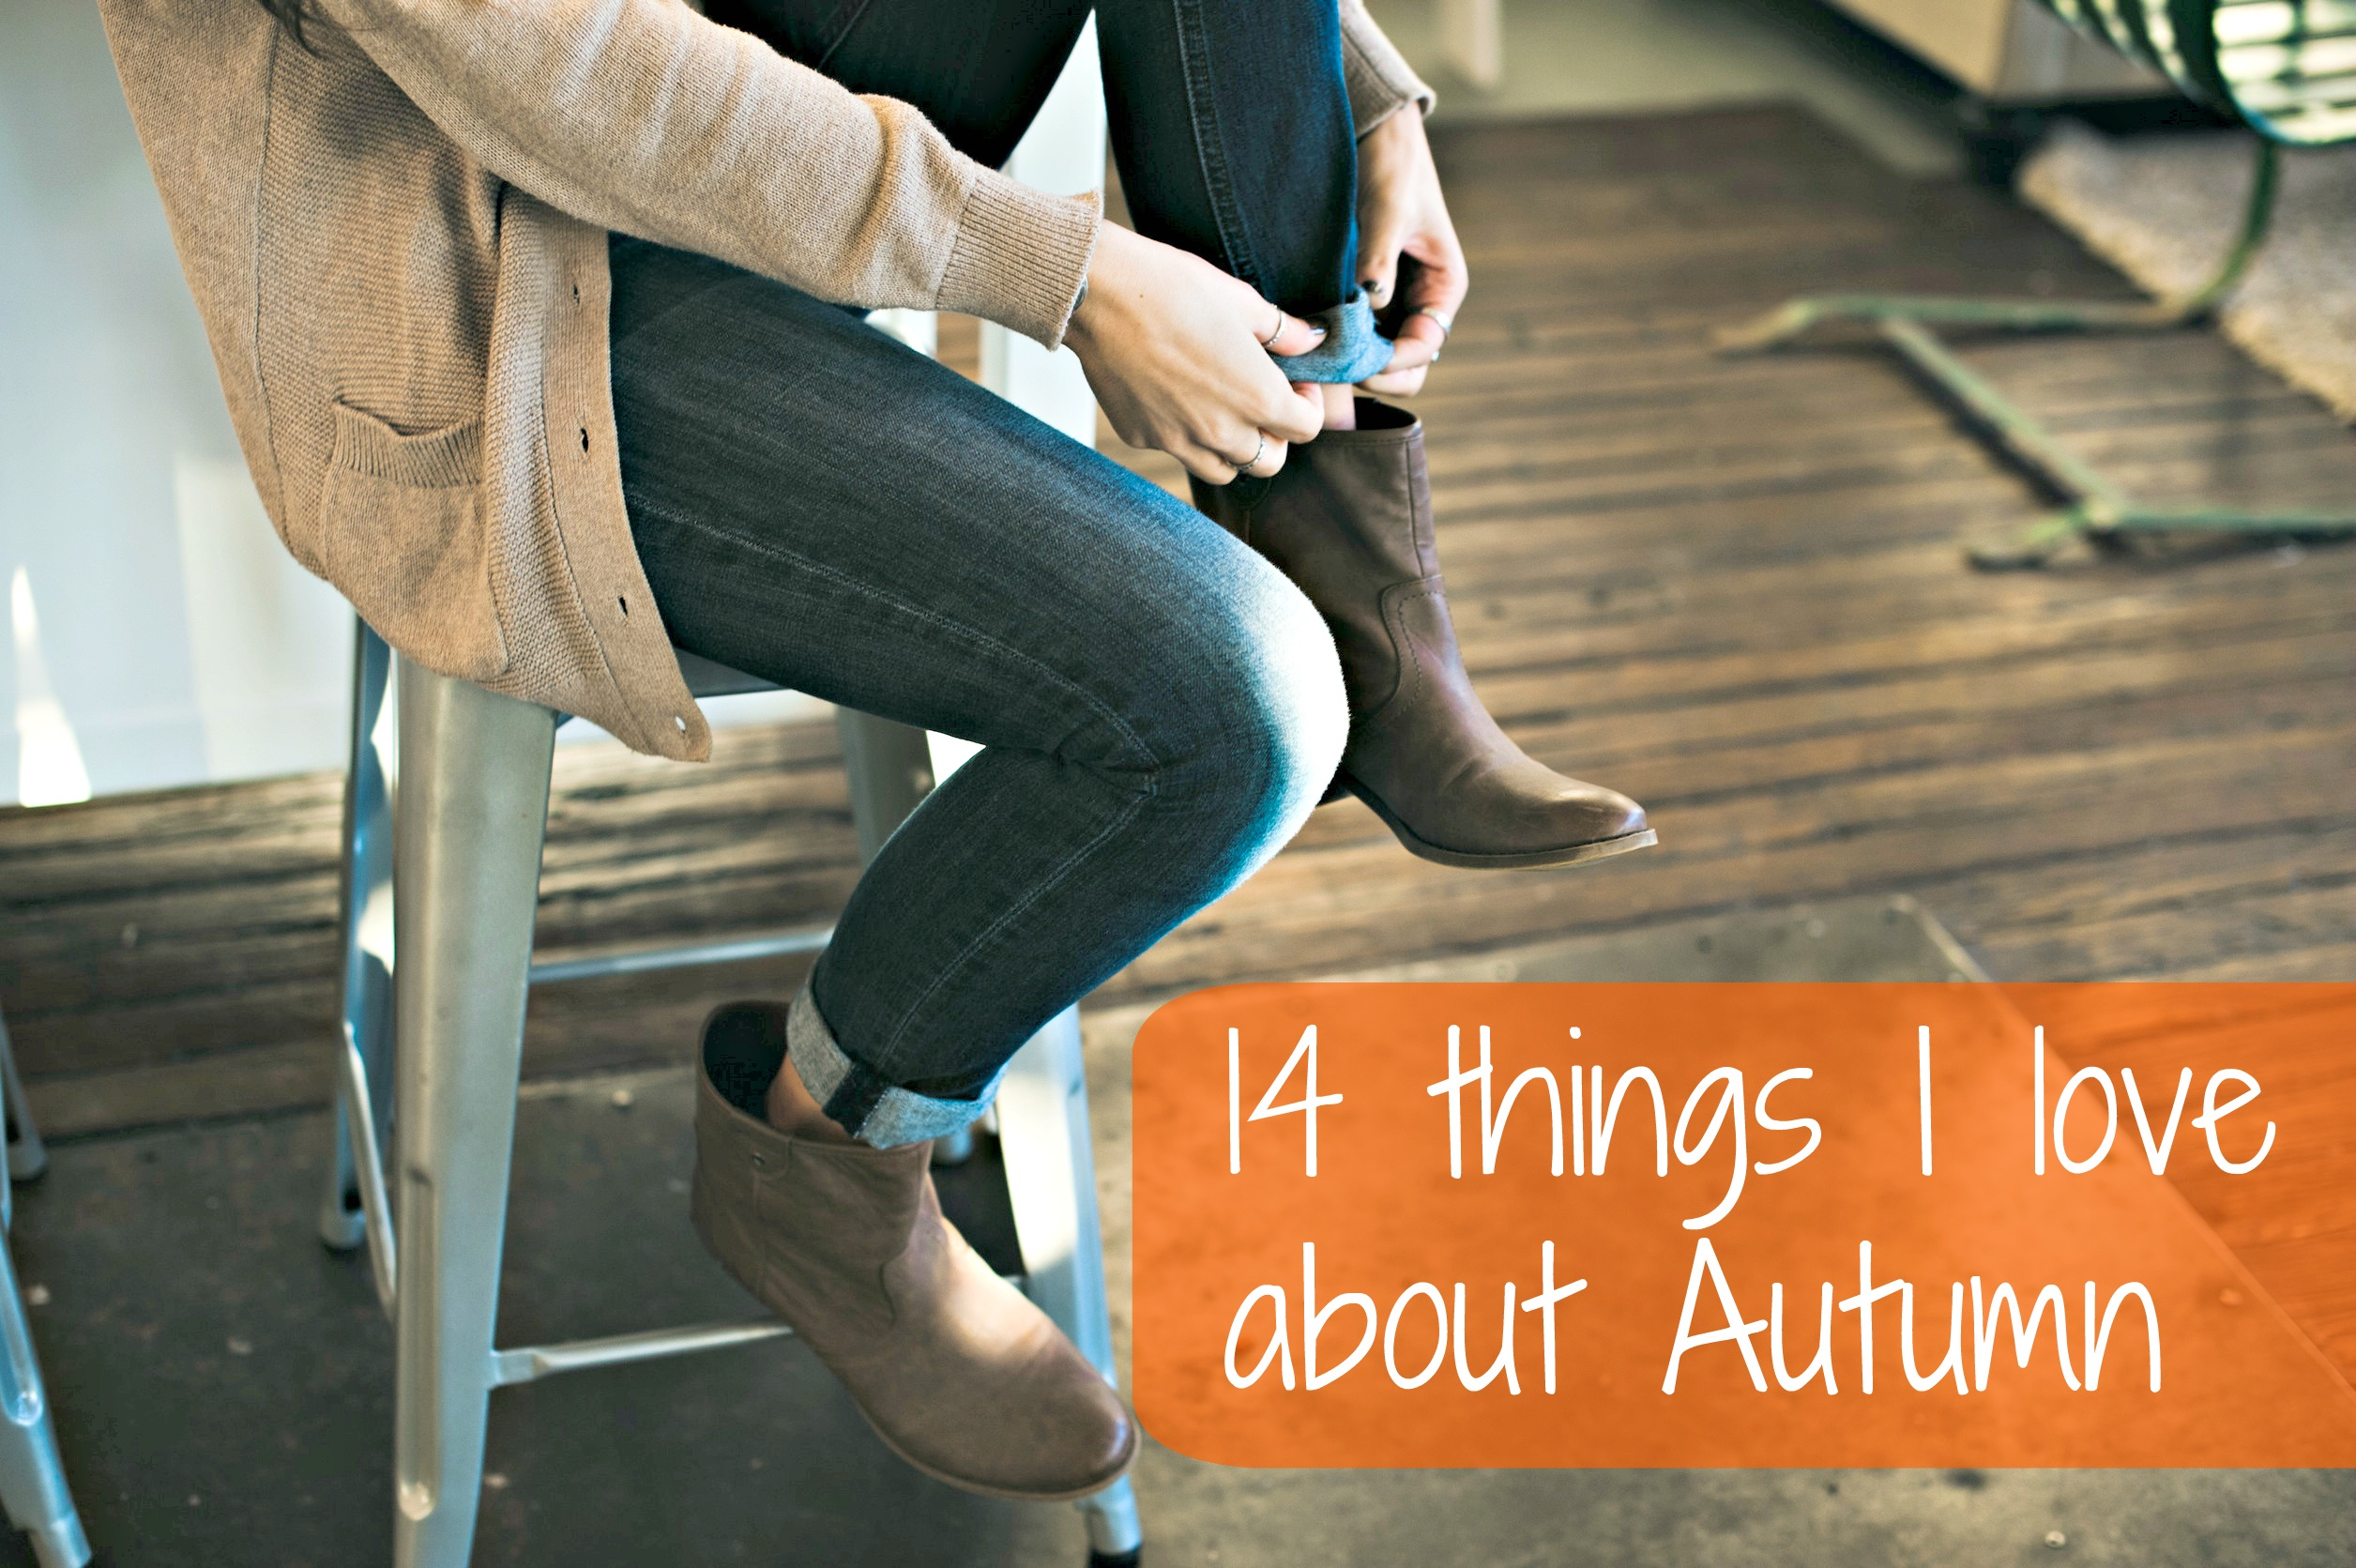 14 things I love about Autumn